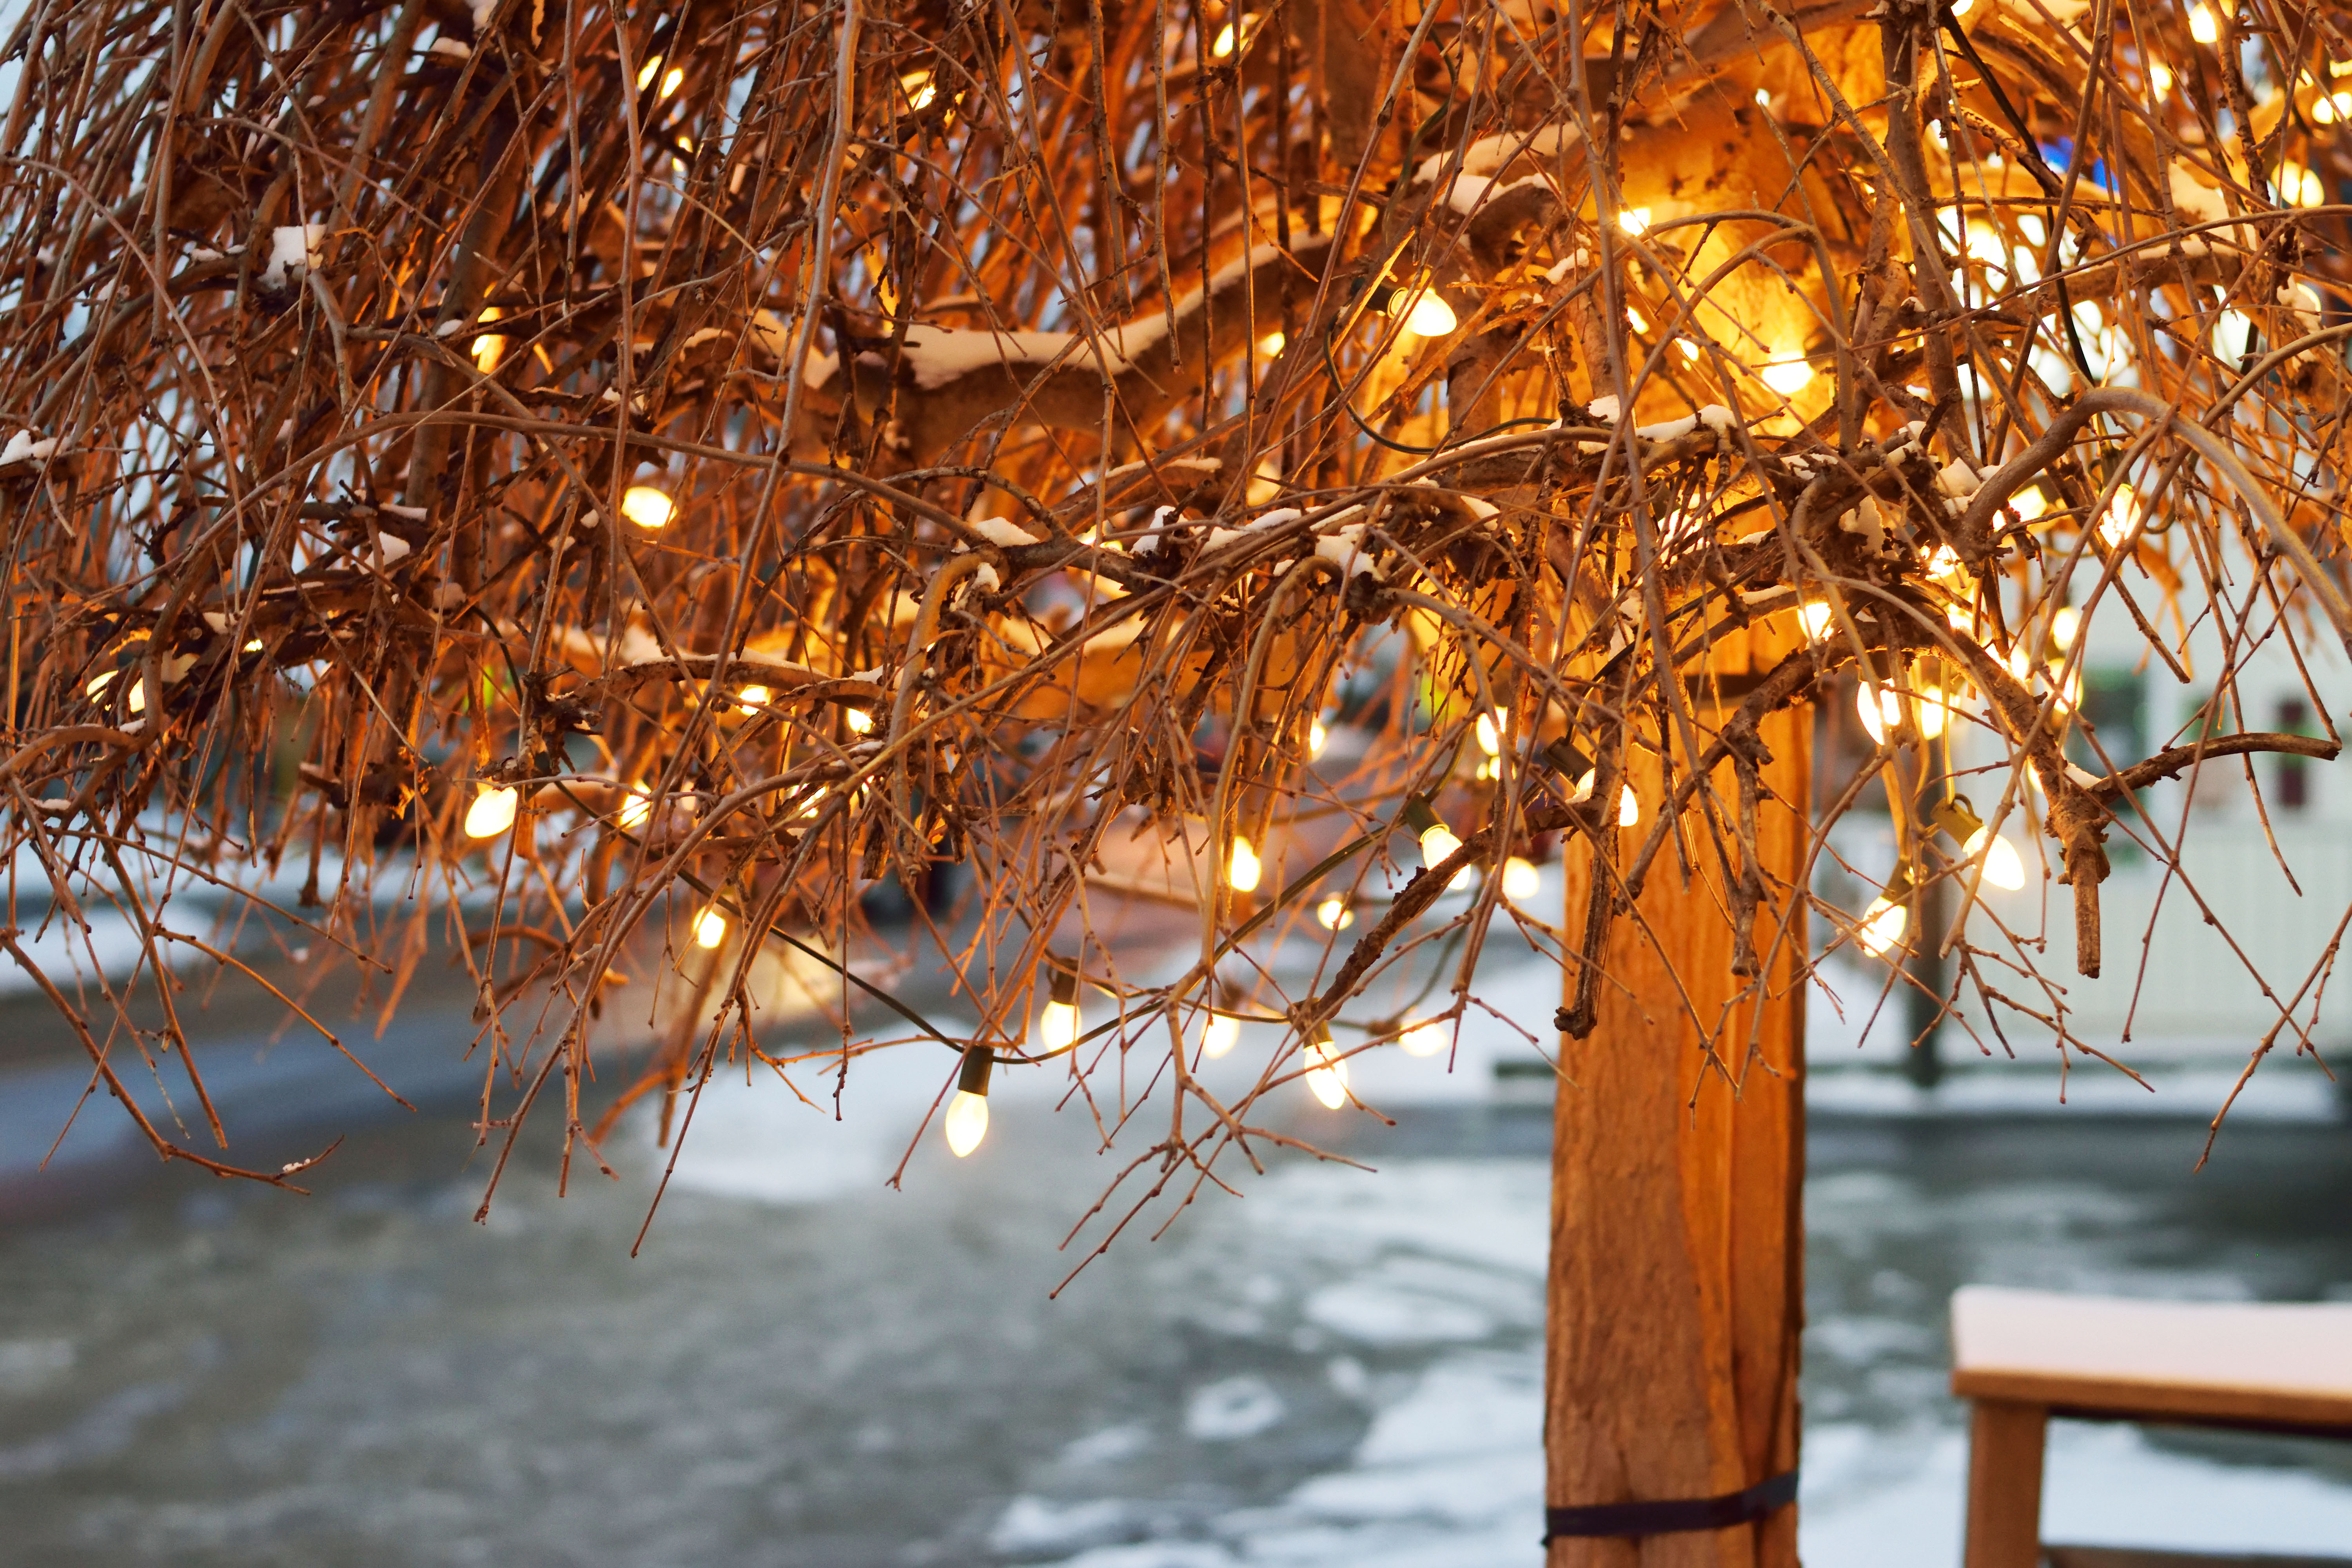 A Christmas eve to remember at St. Jacob's Village